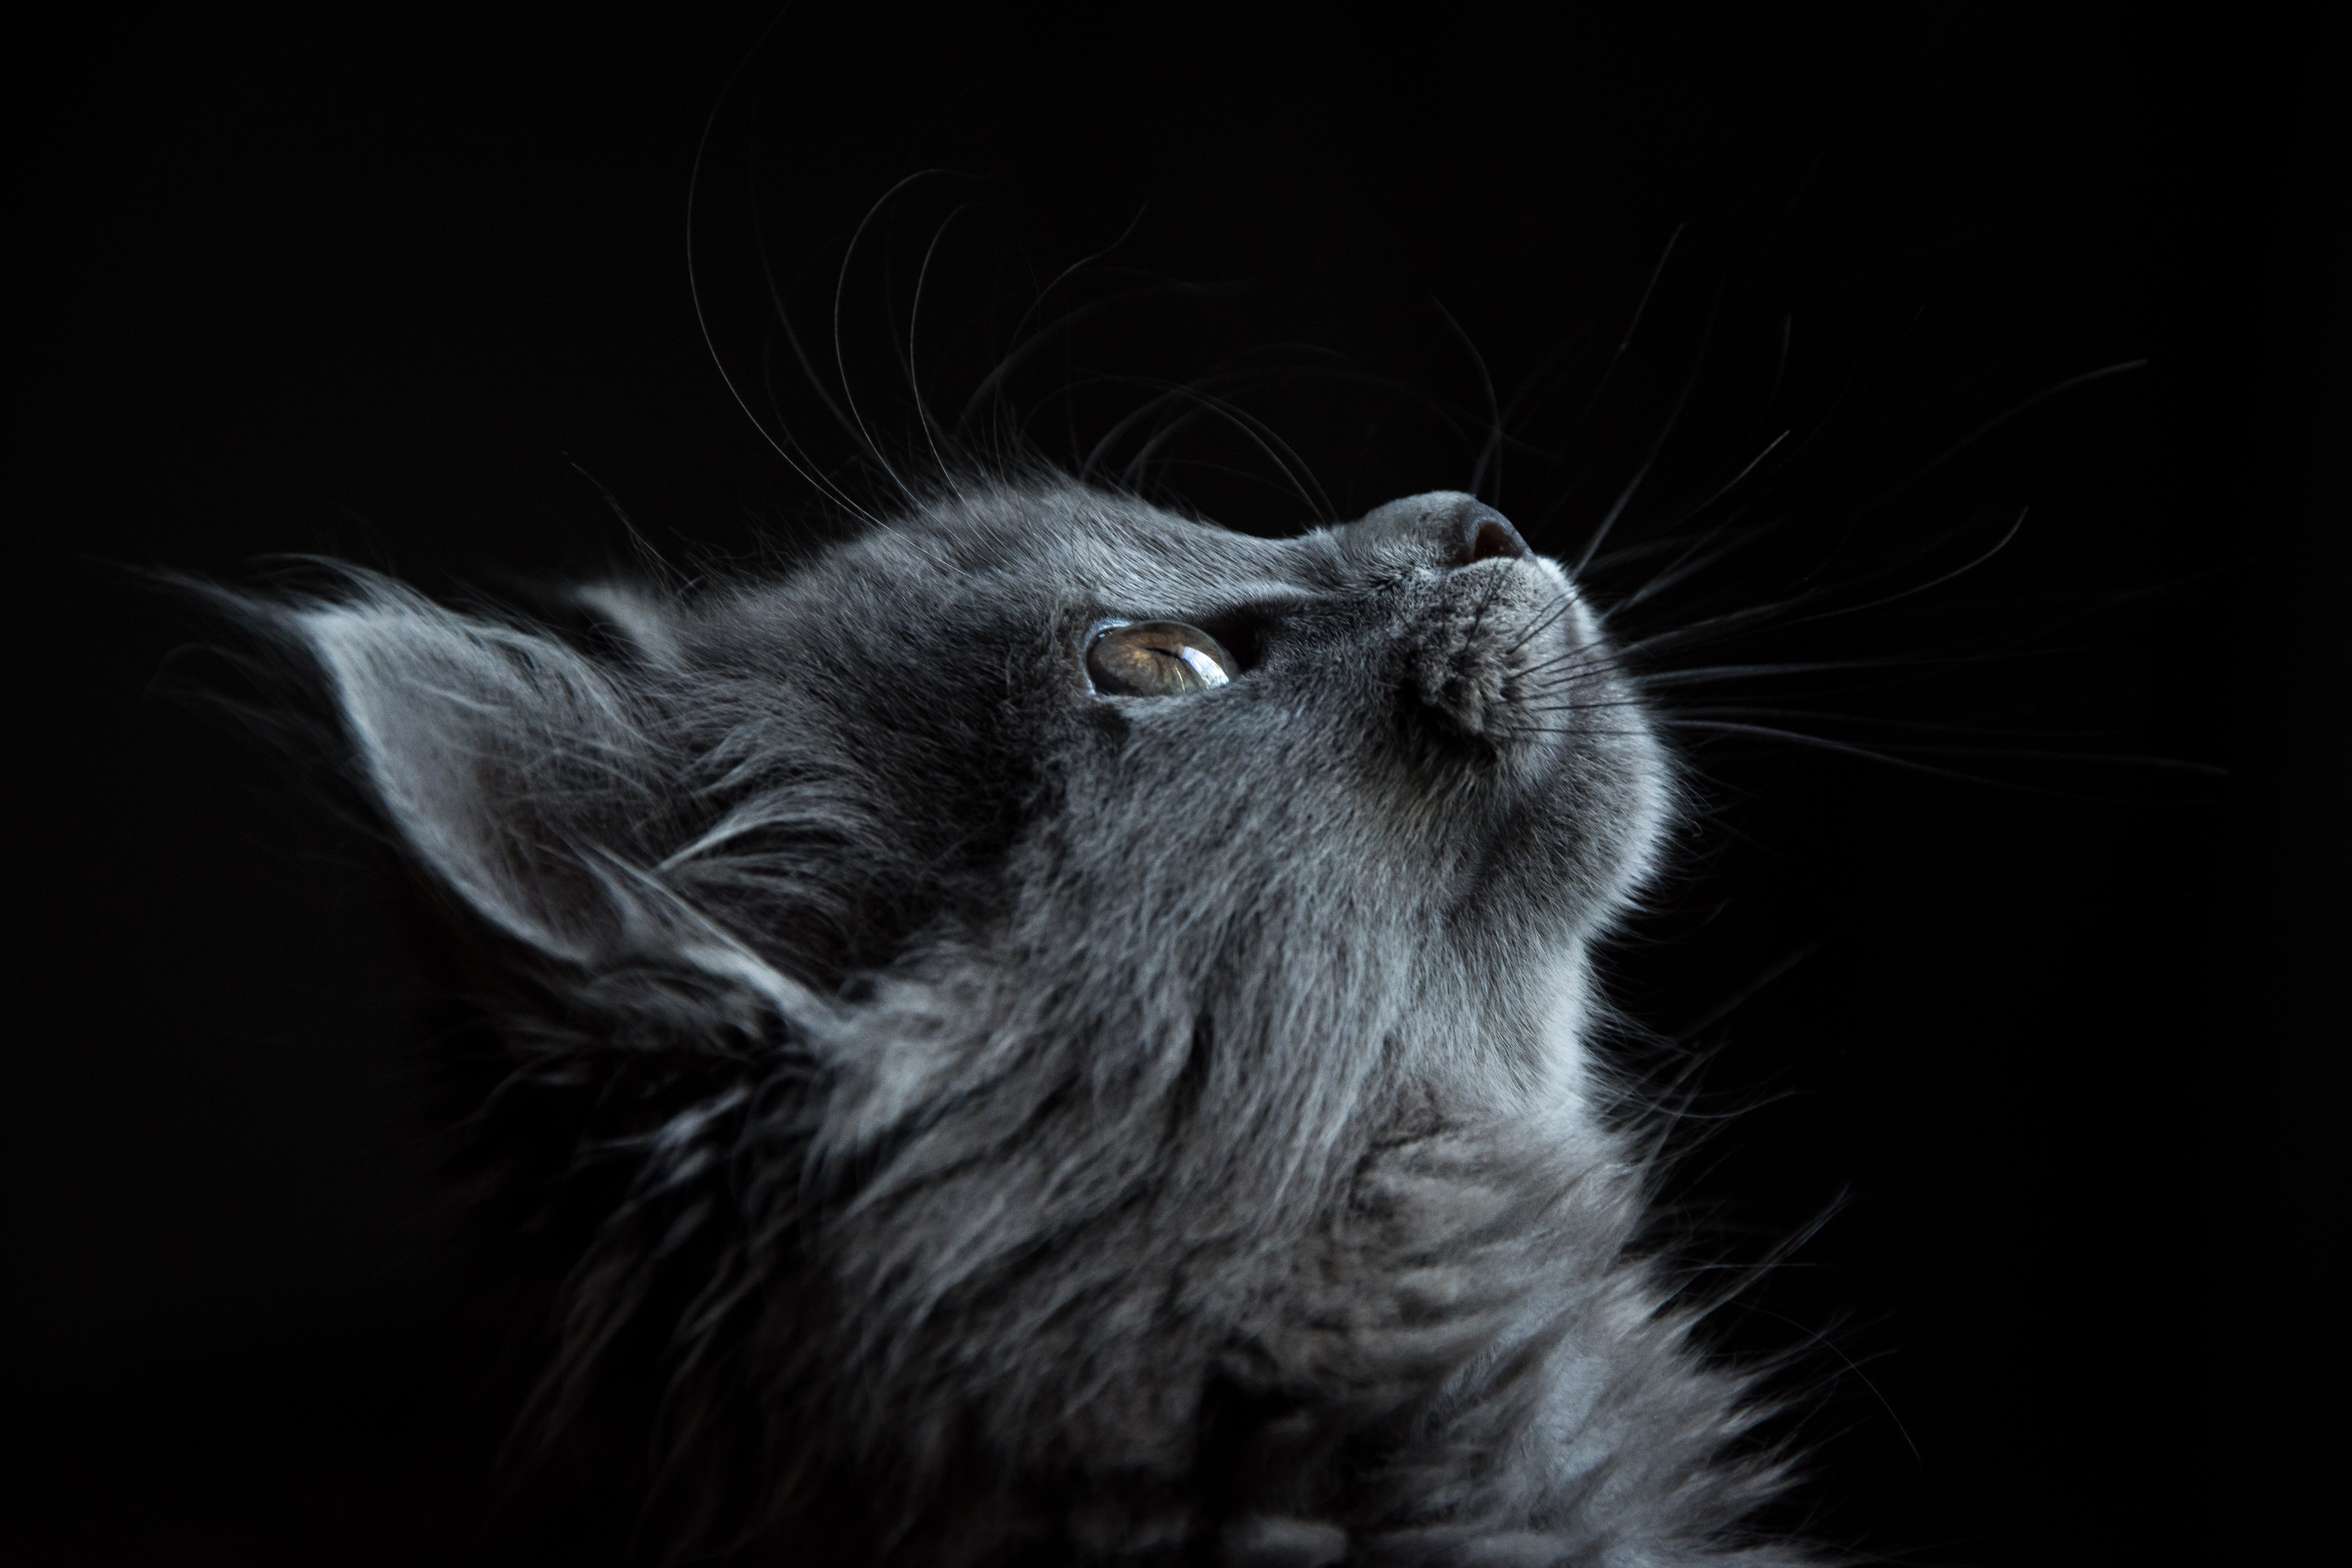 Over a Thousand Adorable Cat Pictures · Pexels · Free Stock